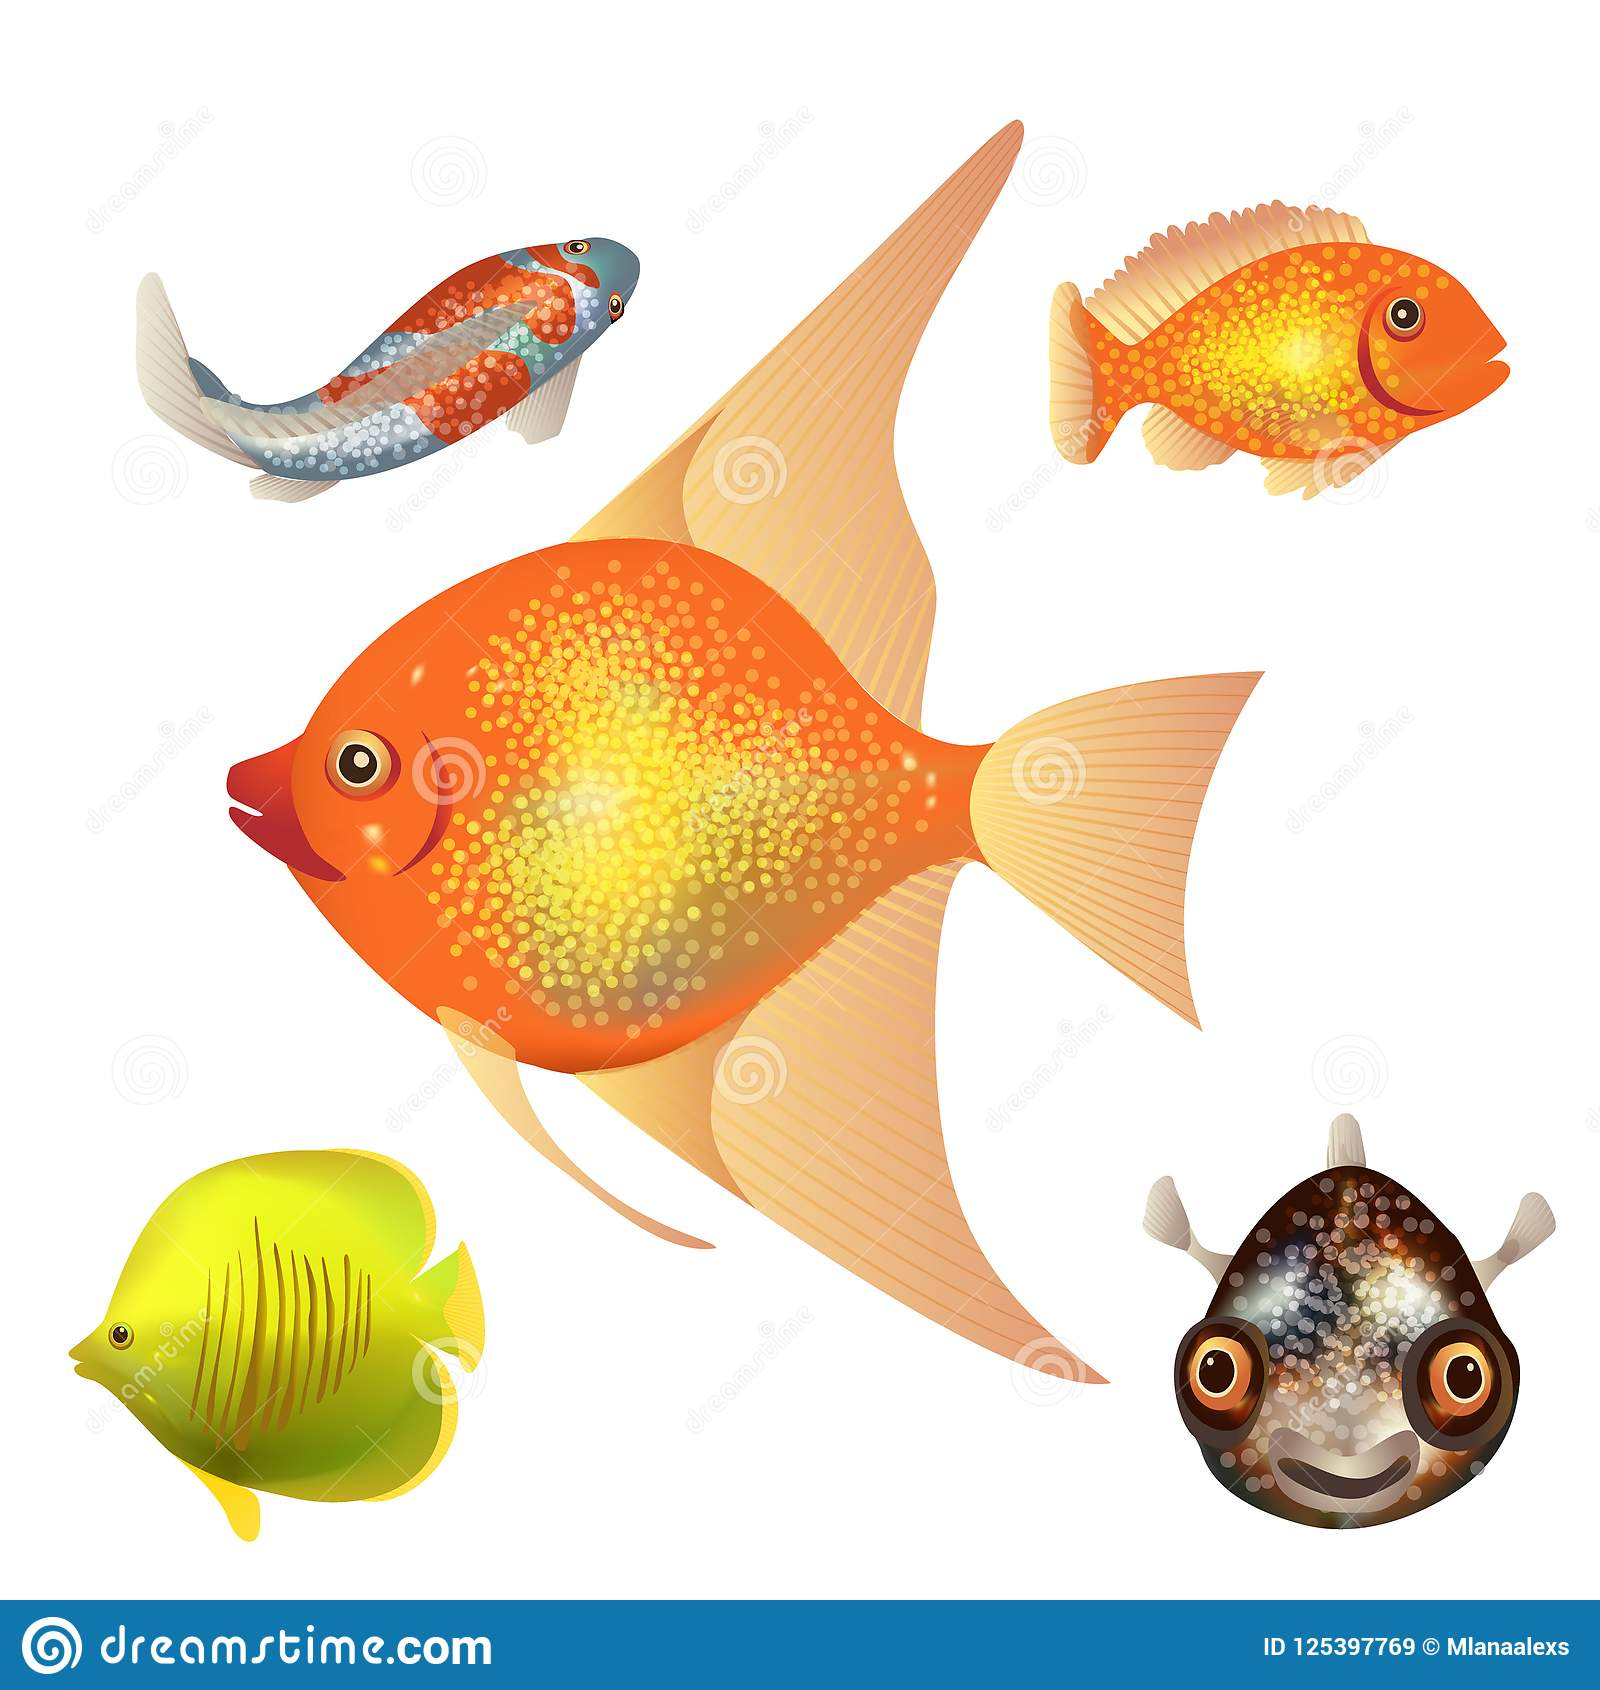 Set Of Fish Different Types Of Fish Colorful With Bright Scales Stock Vector Illustration Of Clipart Background 125397769